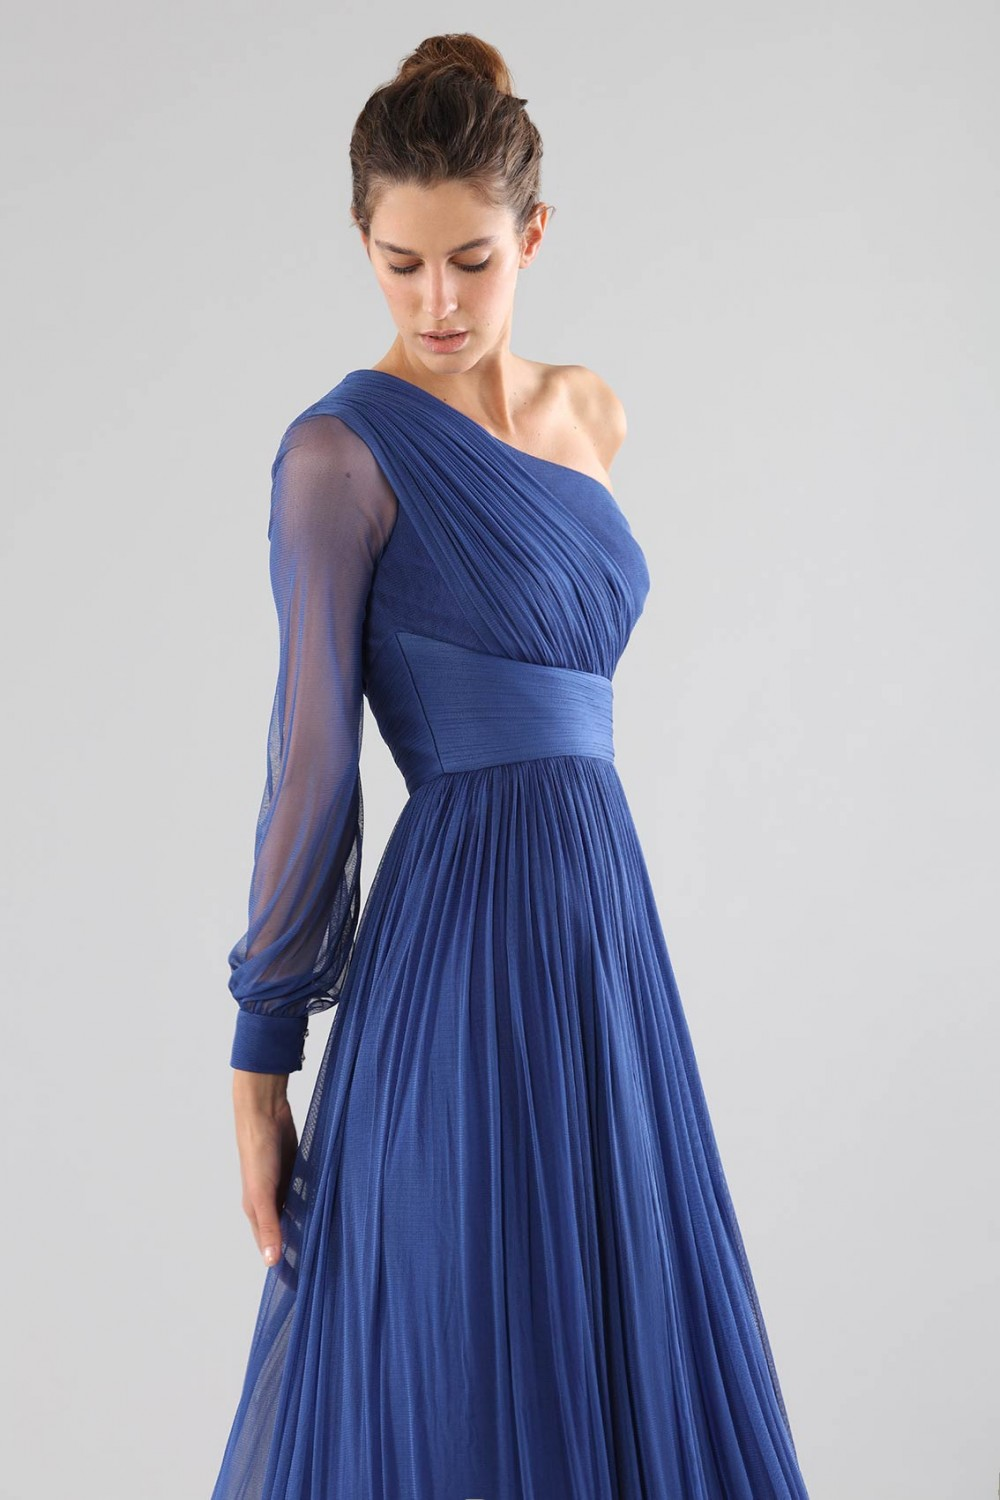 One-shoulder blue dress with long sleeve